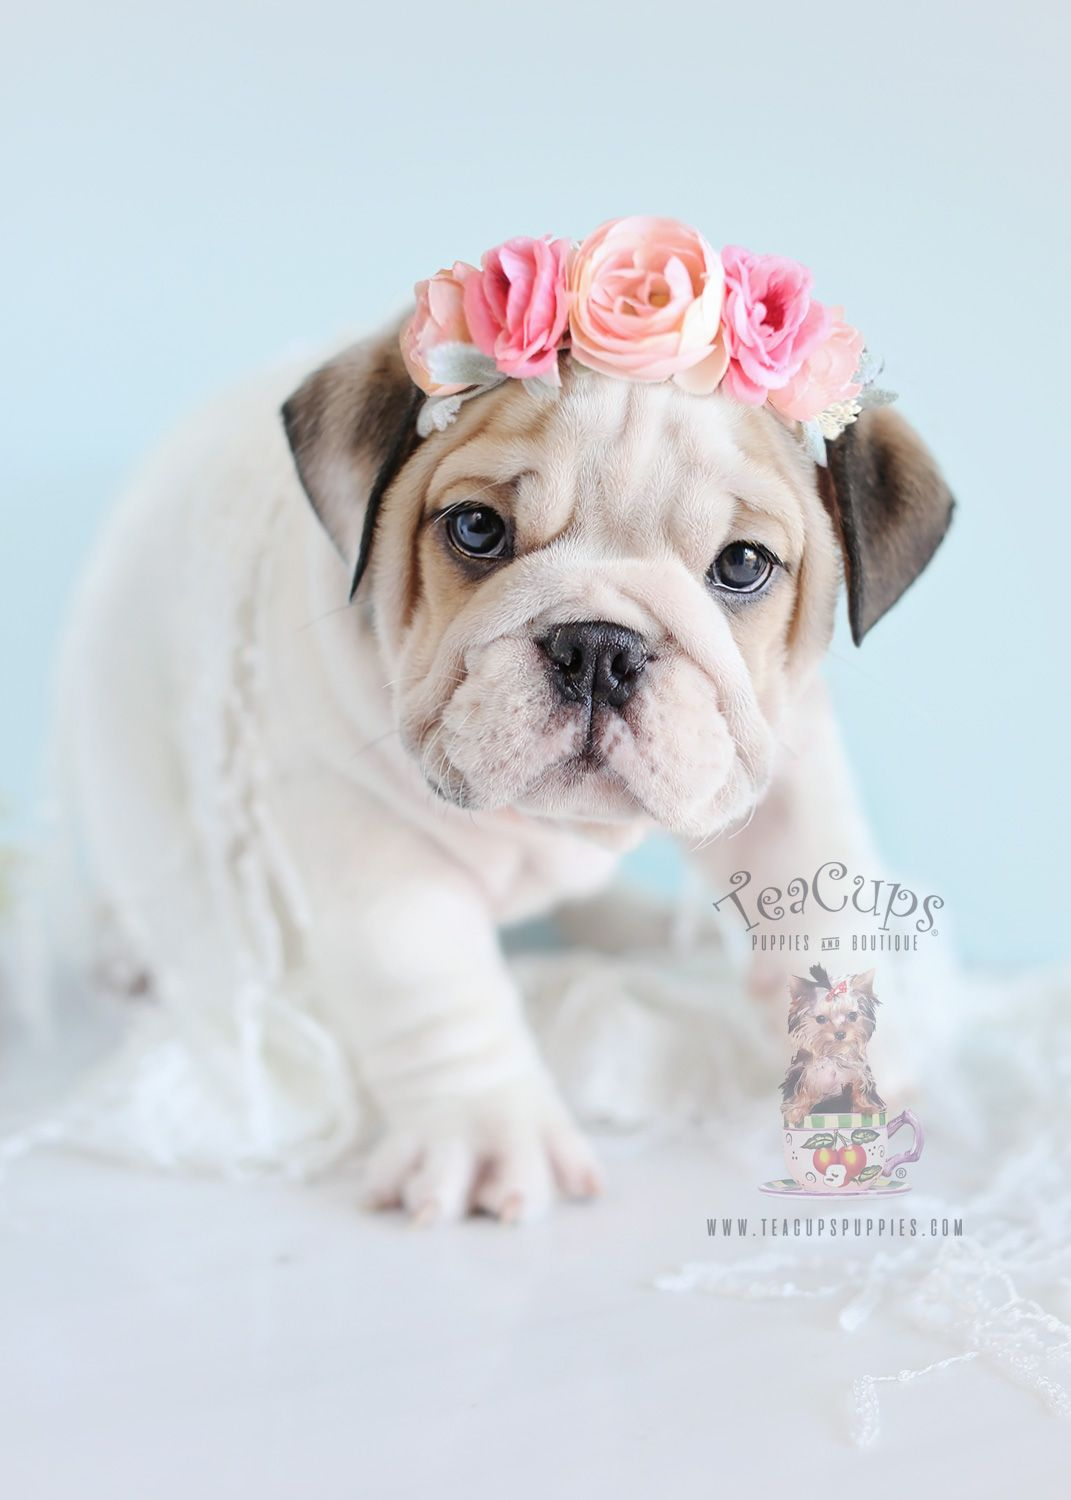 English Bulldog 159 Puppy For Sale Puppy Bulldog